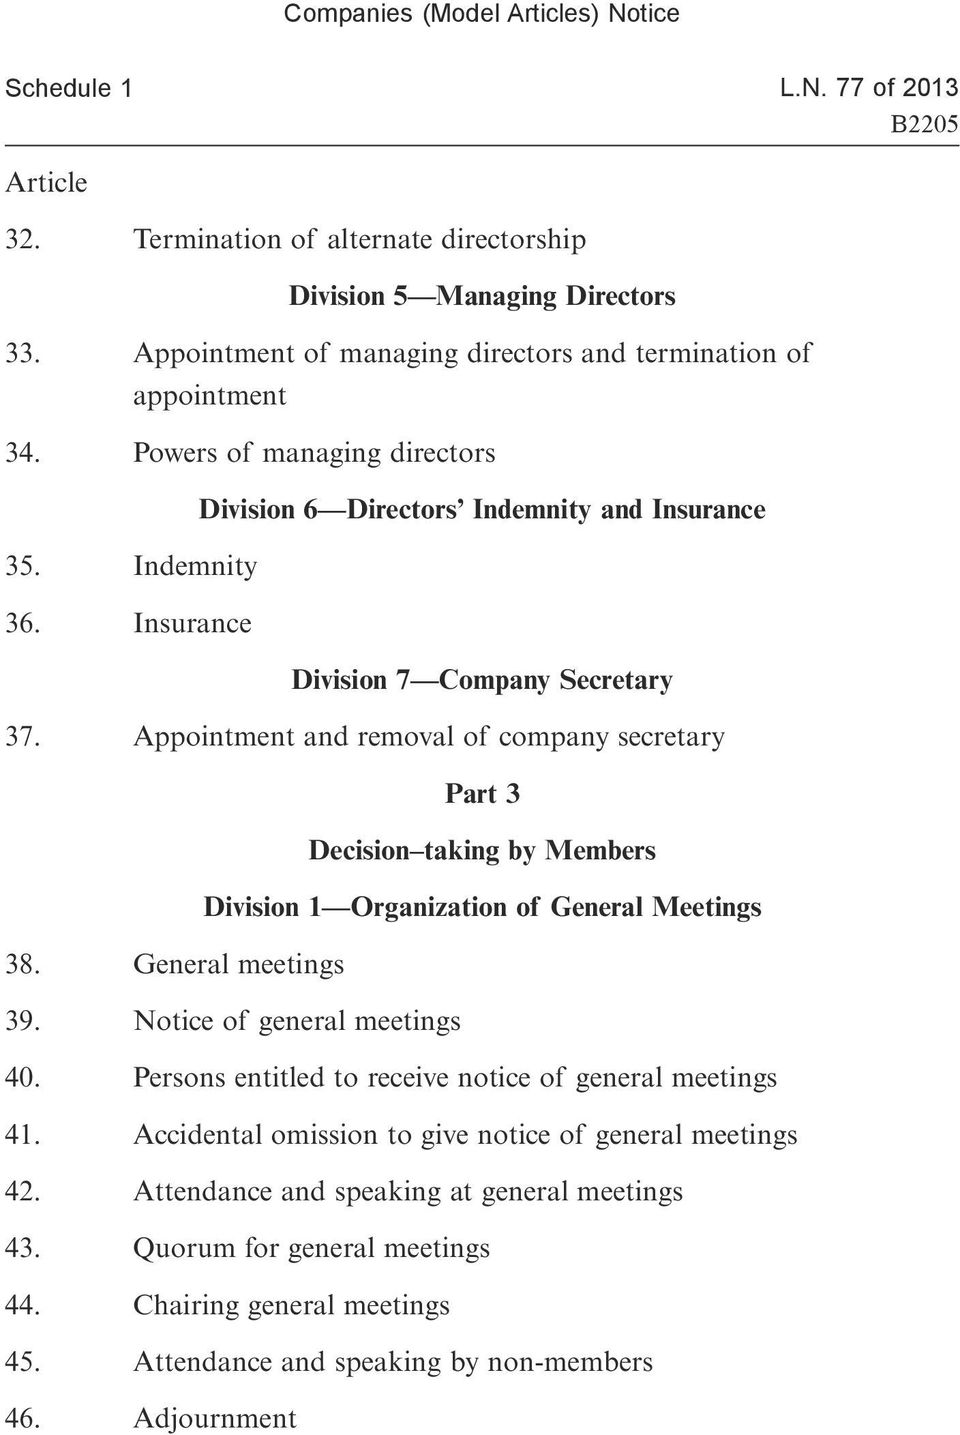 Appointment and removal of company secretary Part 3 Decision taking by Members Division 1 Organization of General Meetings 38. General meetings 39. Notice of general meetings 40.